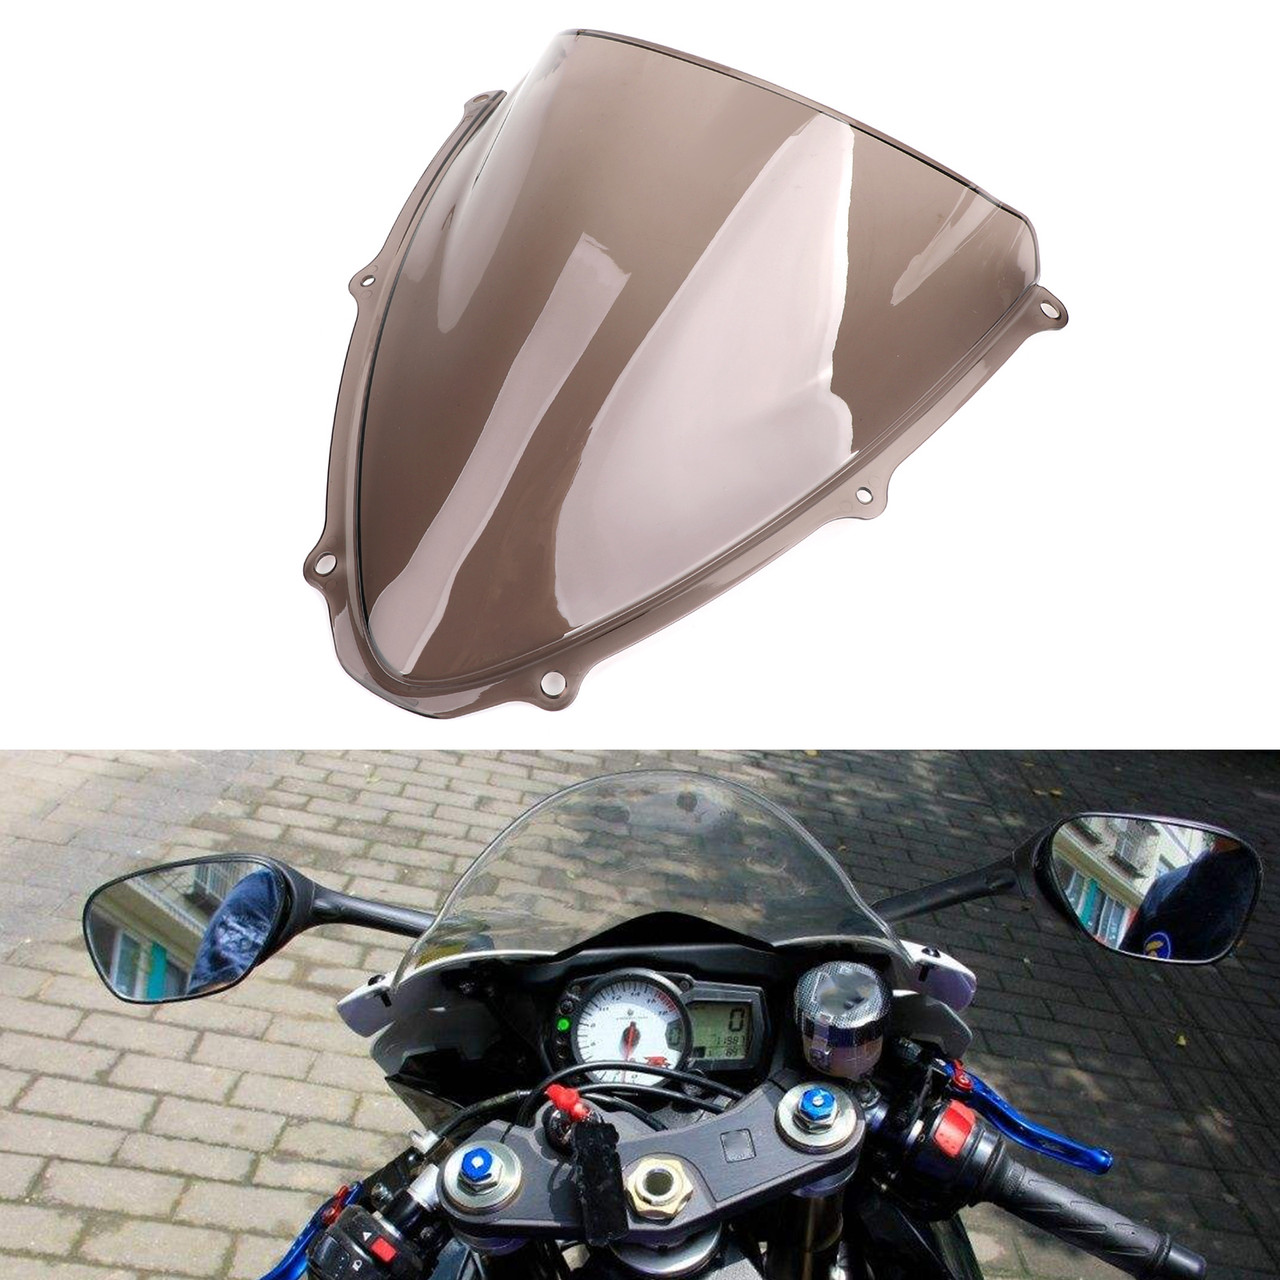 Windshield Fit for Suzuki GSXR 600 750 K6 06-07 Smoke